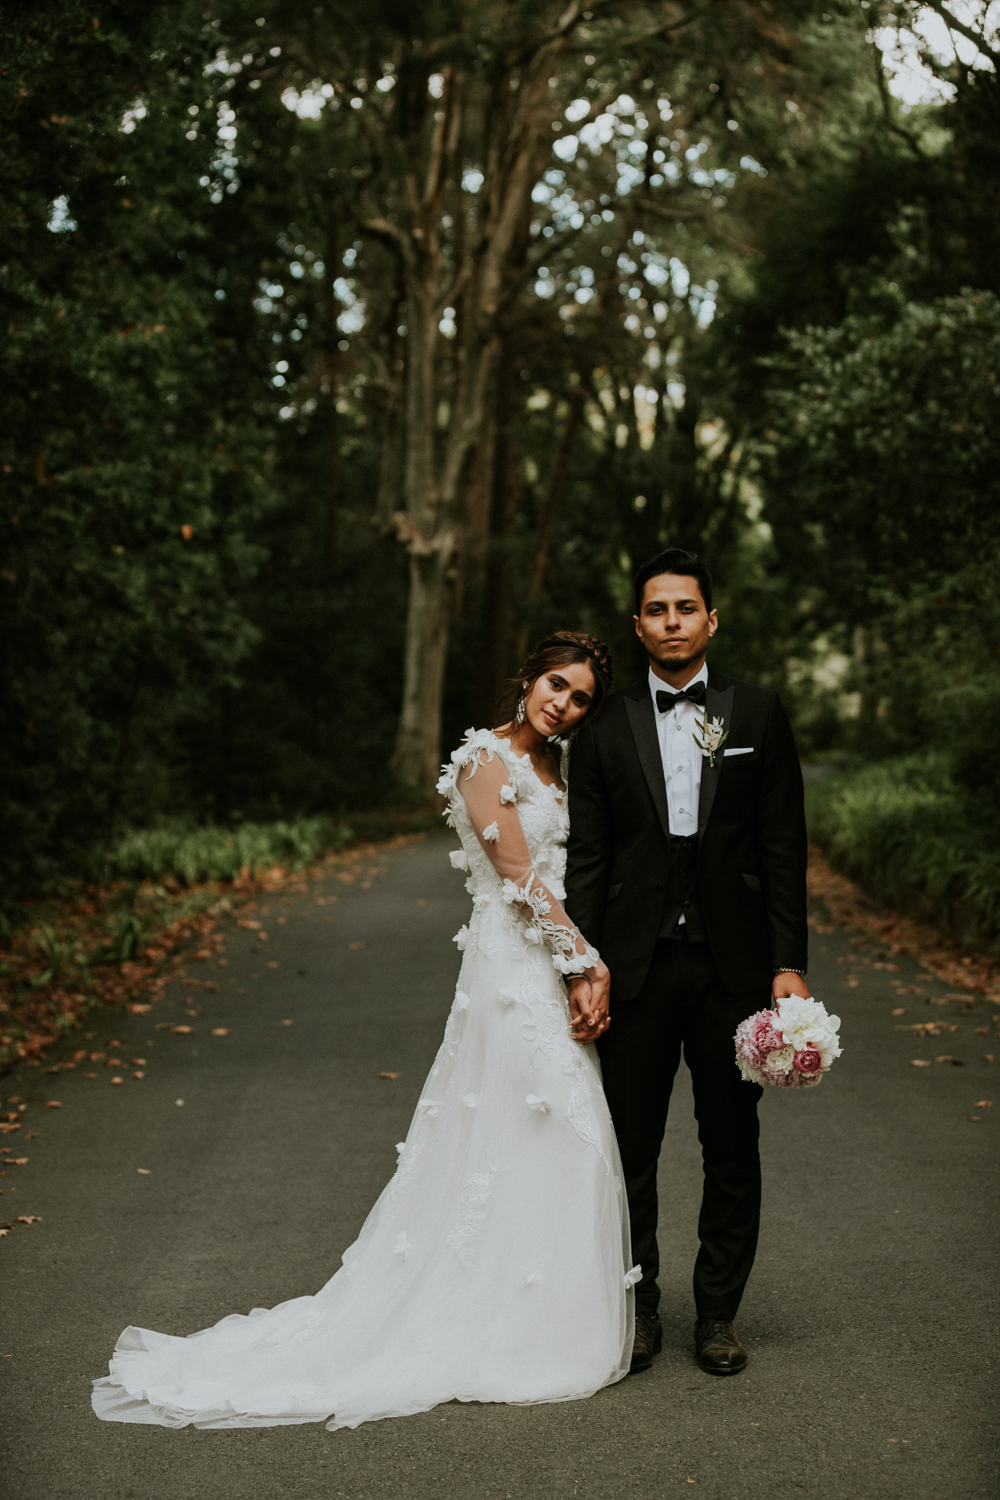 Forest Wedding Cape Town - Bianca Asher Photography-64.jpg